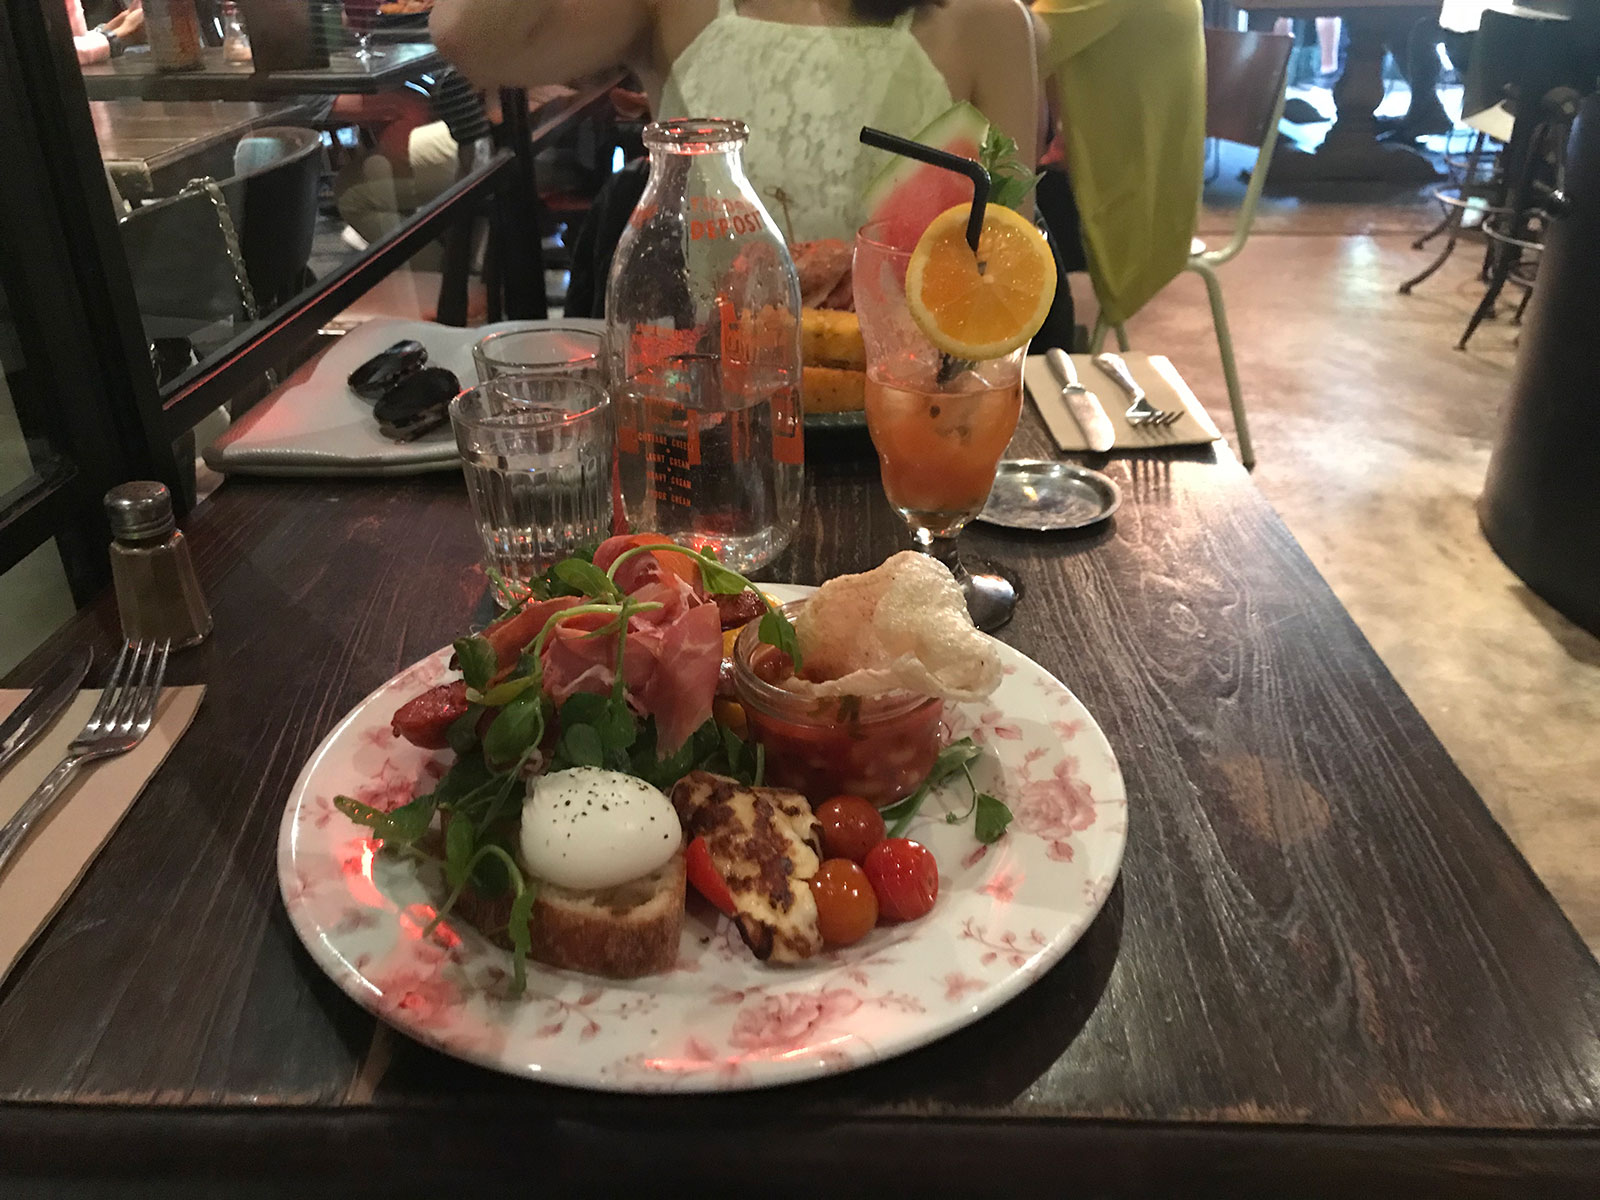 Toast topped with a poached egg, greens, prosciutto and chorizo, with small tomatoes, capsicum and halloumi on the side, served on a white plate with a floral design.